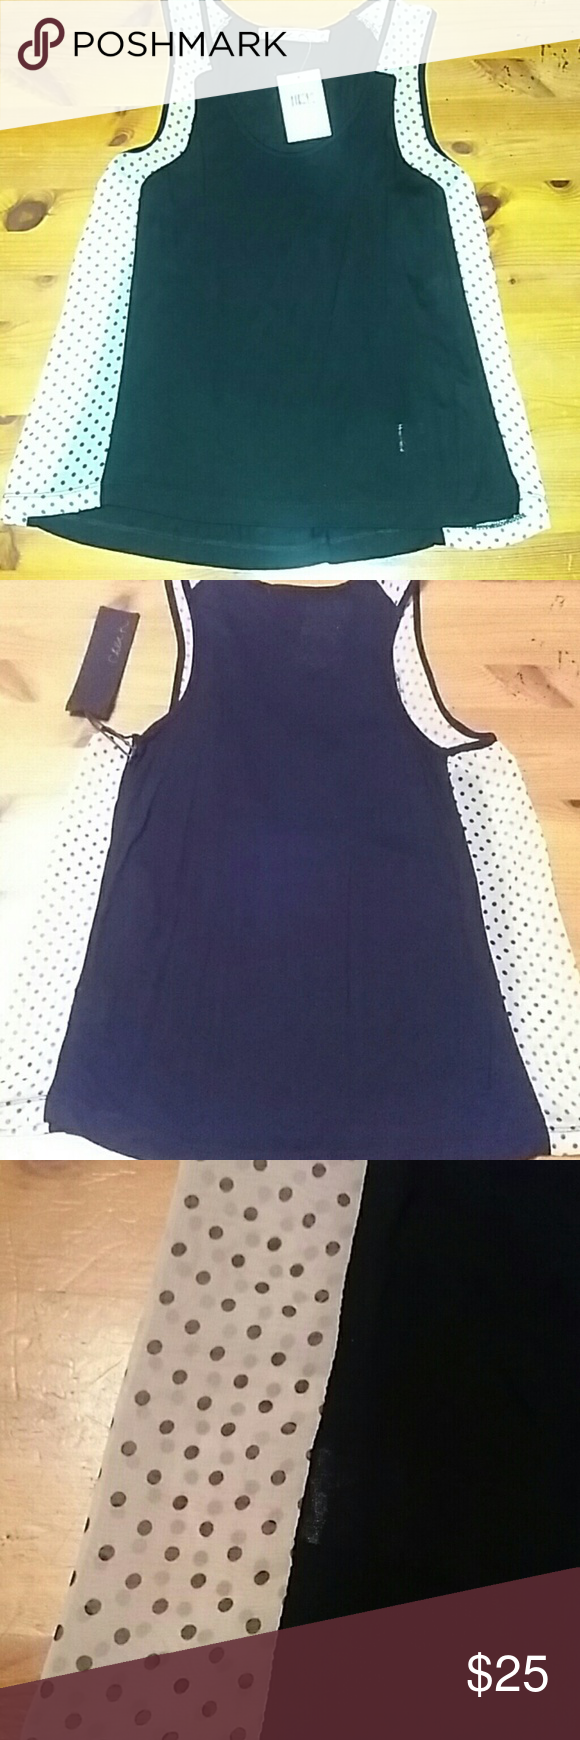 Beautiful Black & White Polka Dot Tank Top Beautiful Chloe K Black & White Polka Dot Tank Top. 100% Rayon Cont / 100% Polyester. You will look amazing in this top. Chloe K Tops Tank Tops